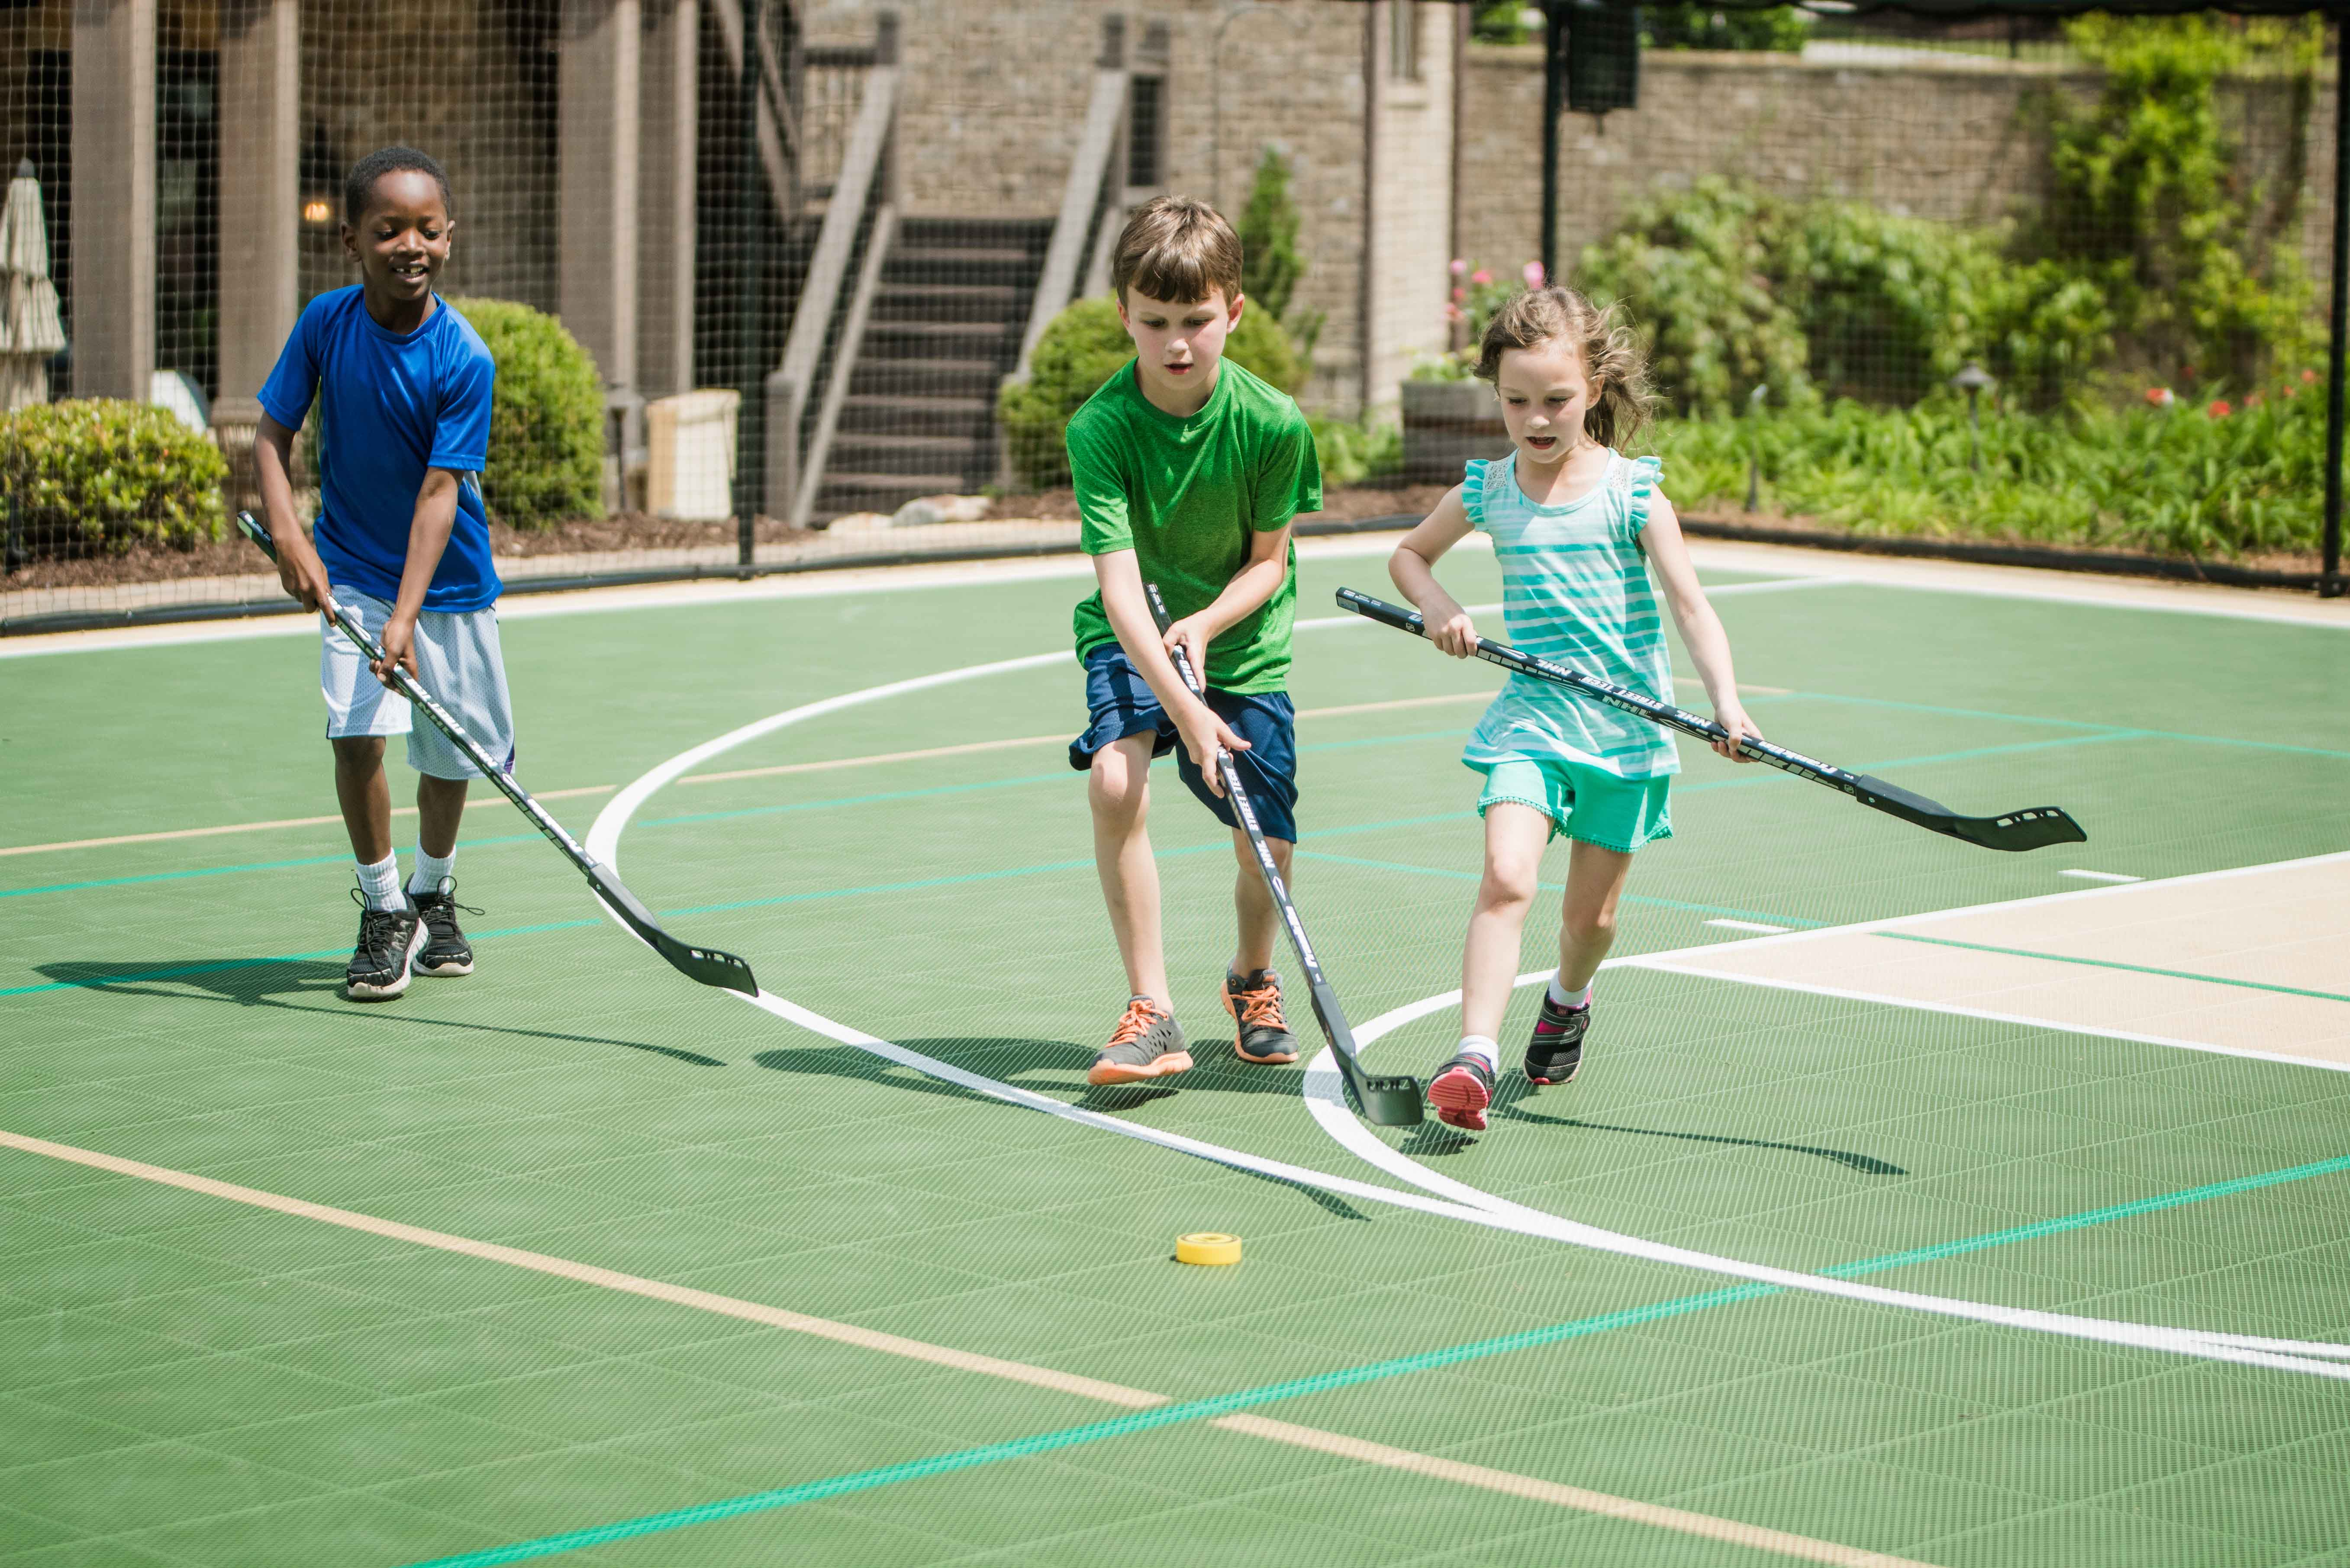 Kids Playing Hockey on Sport Court